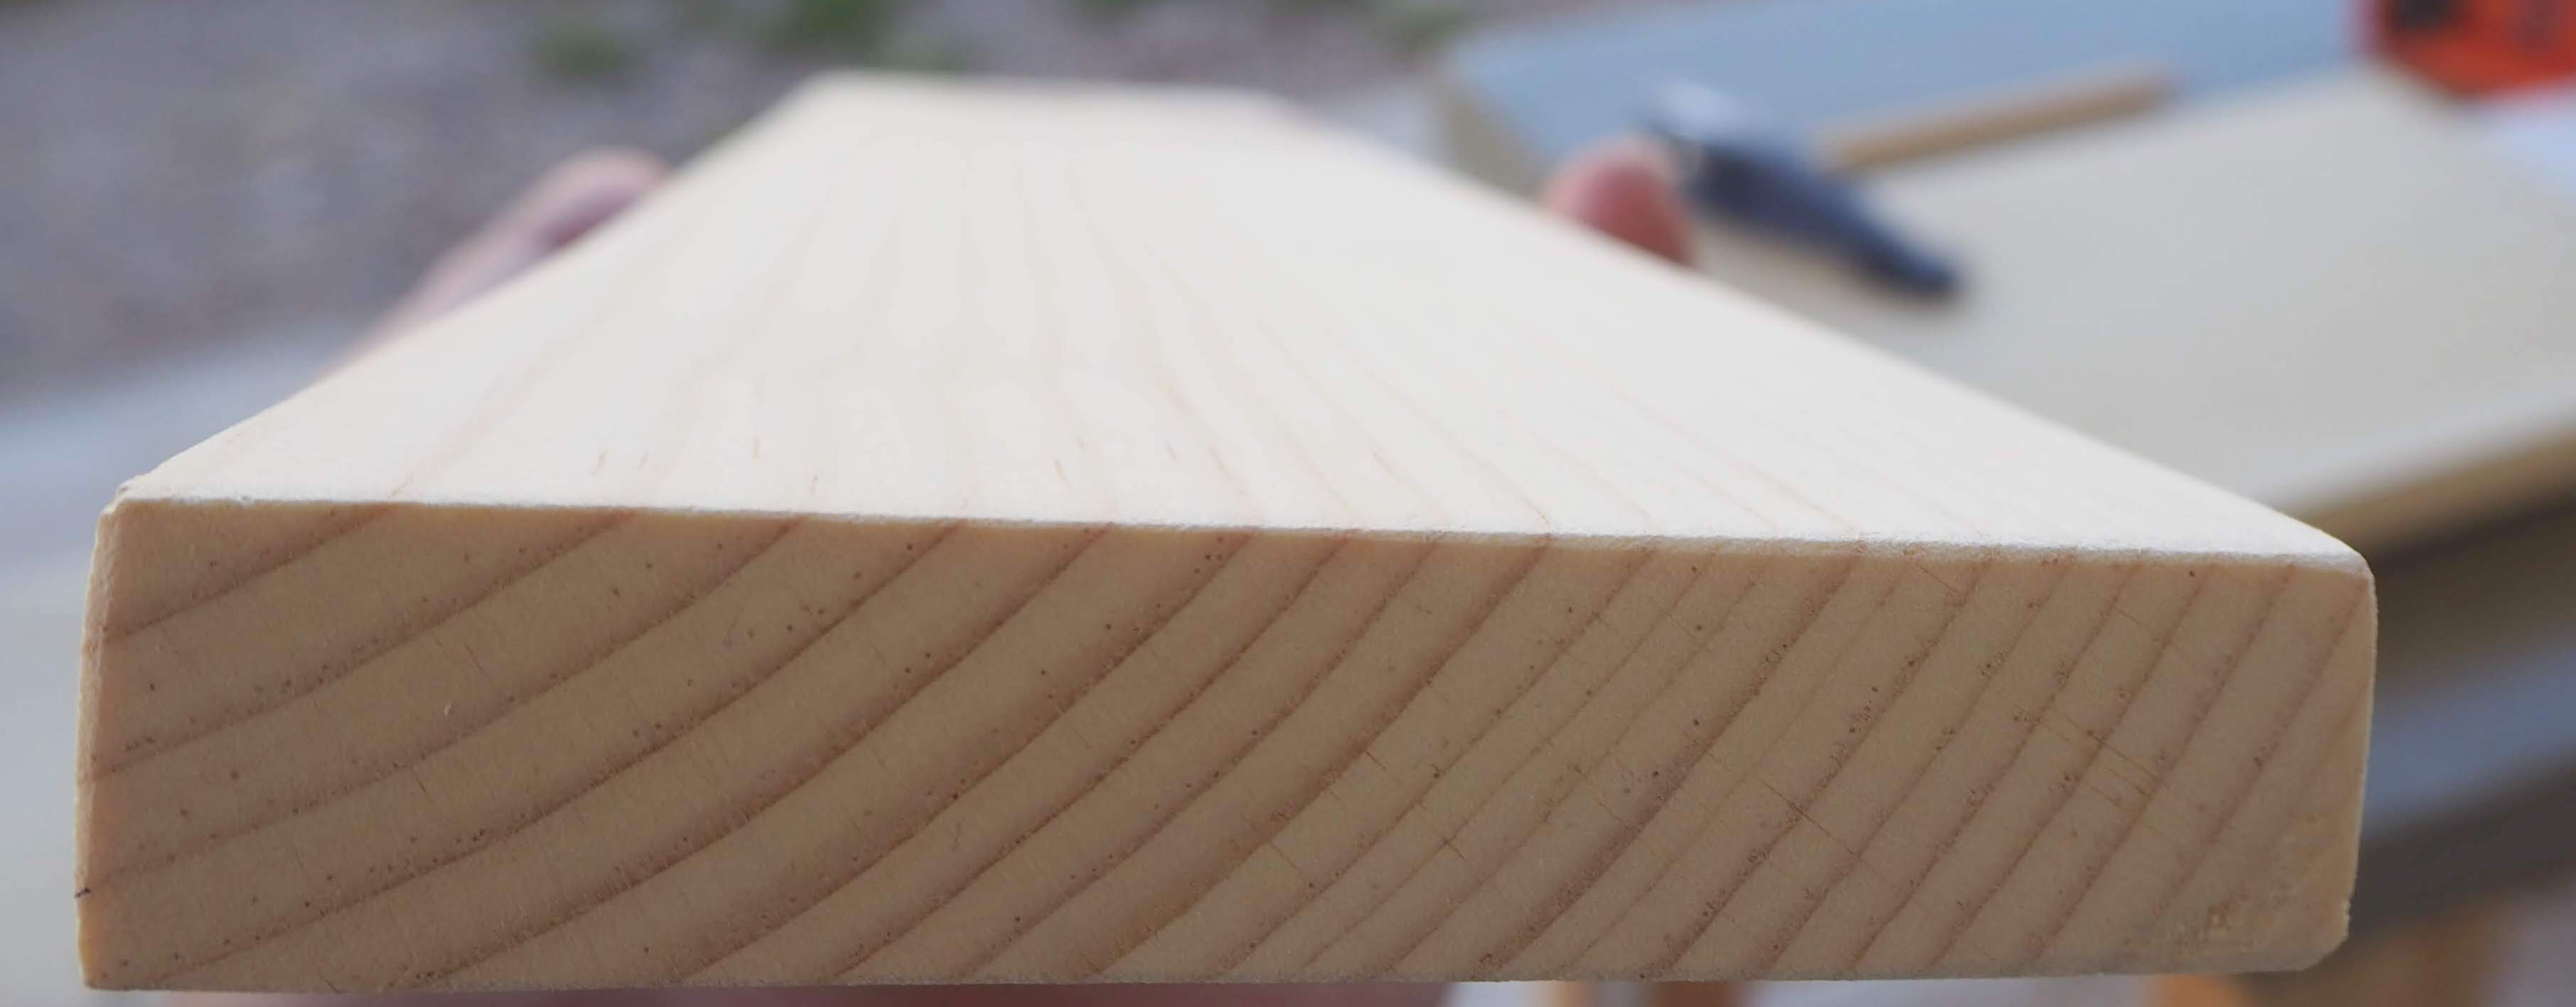 The wood board after the cut.